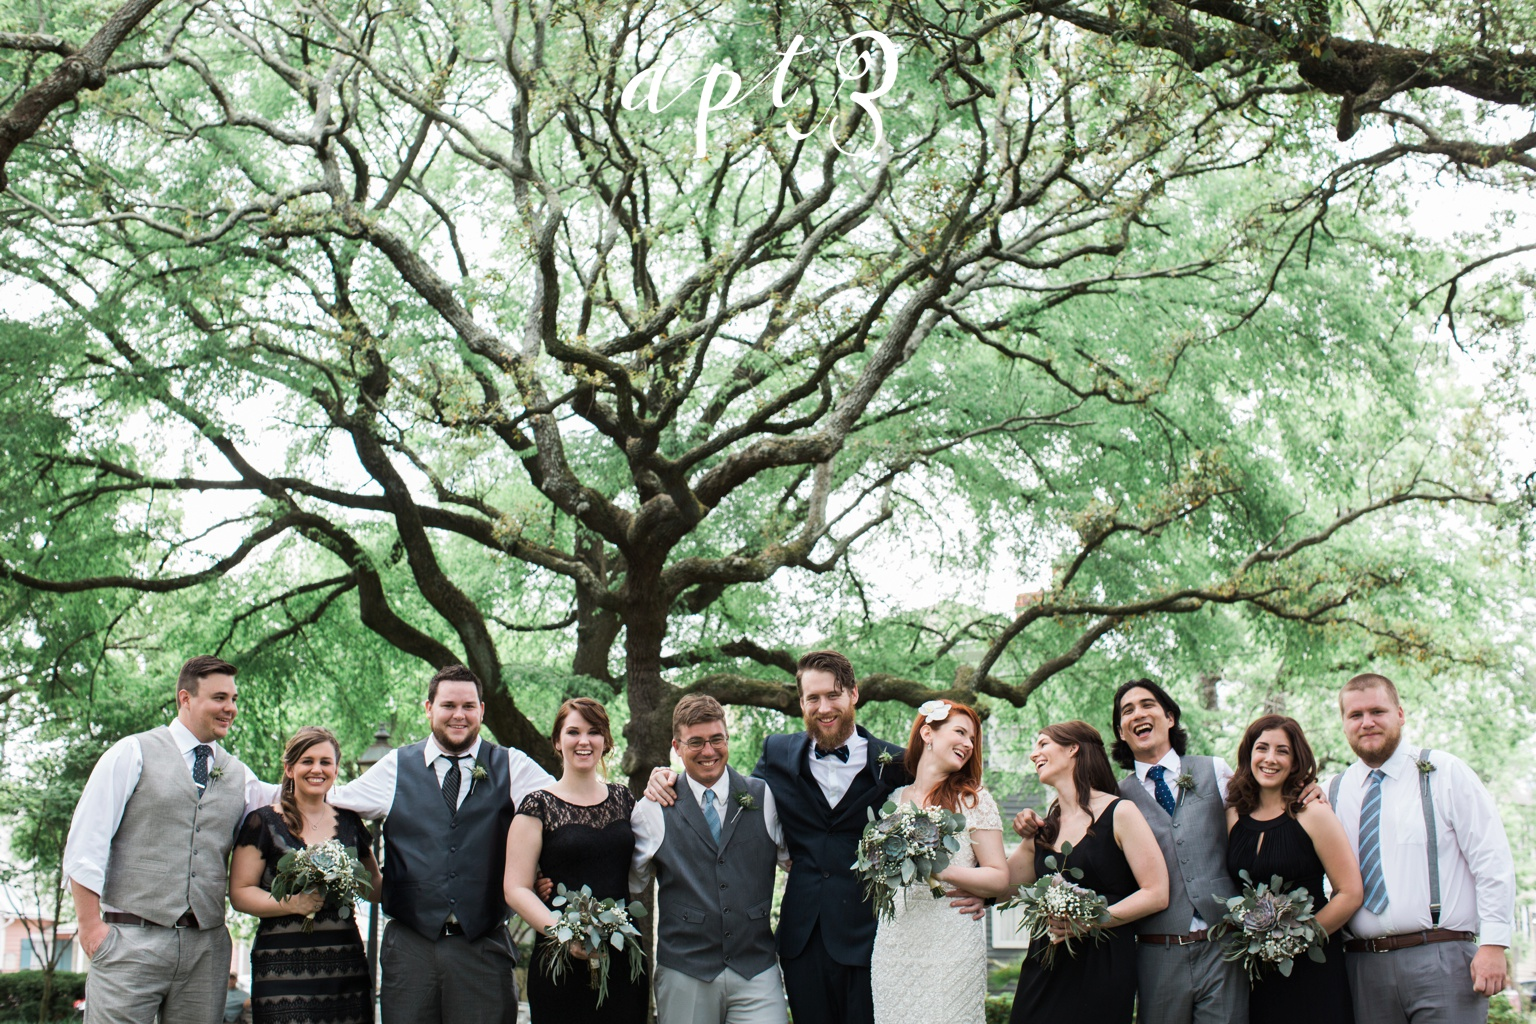 AptBPhotography_SavannahWedding_ChaBella-40.jpg